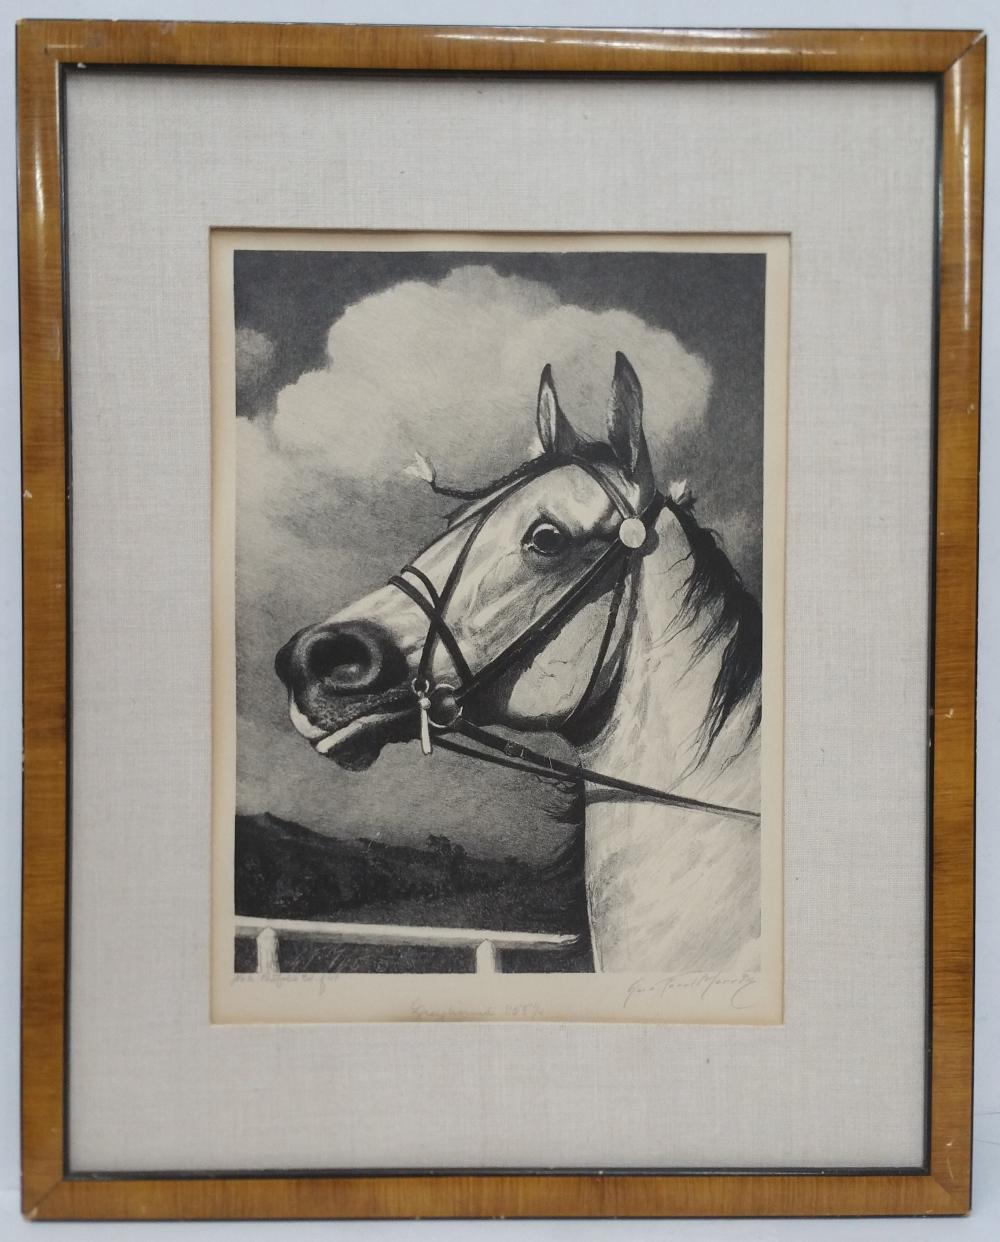 Signed George Ford Morris Lithograph Racehorse Named Greyhound Vintage Equestrian Horse Portrait